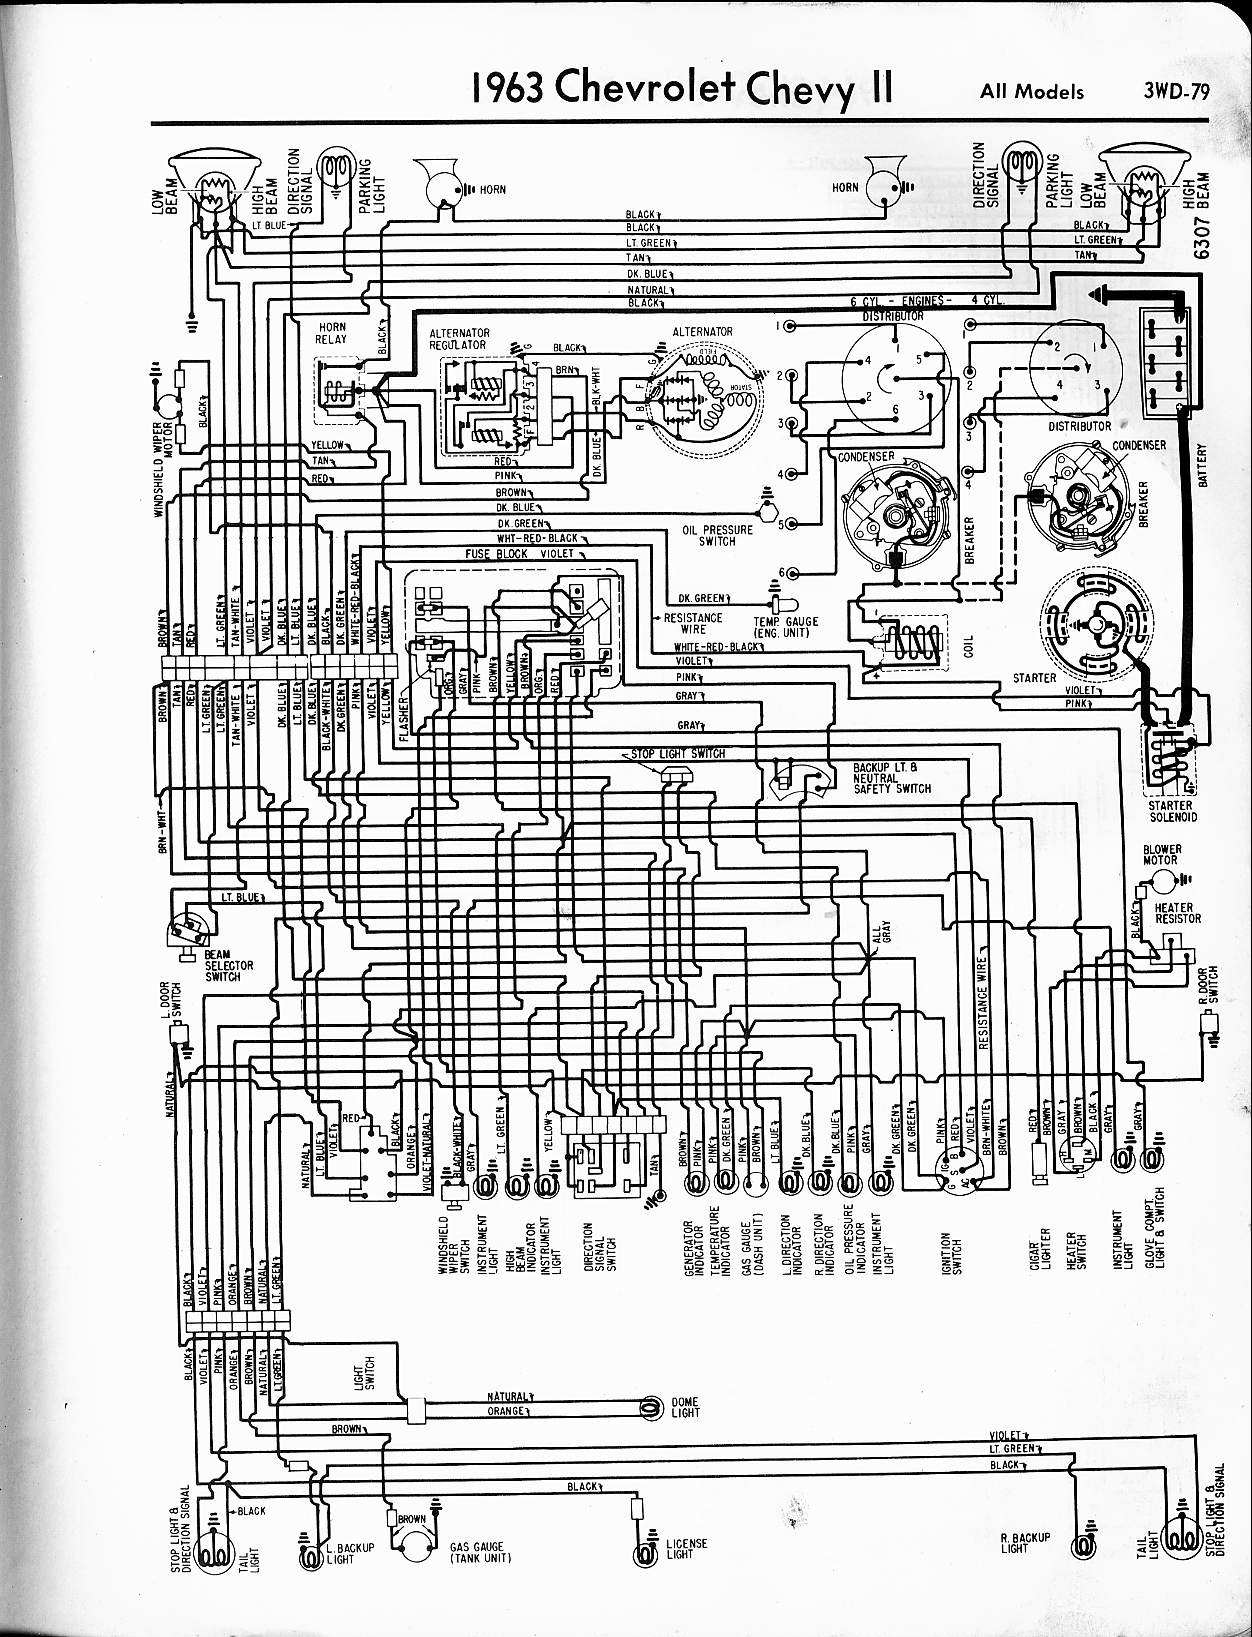 MWireChev63_3WD 079 57 65 chevy wiring diagrams  at eliteediting.co